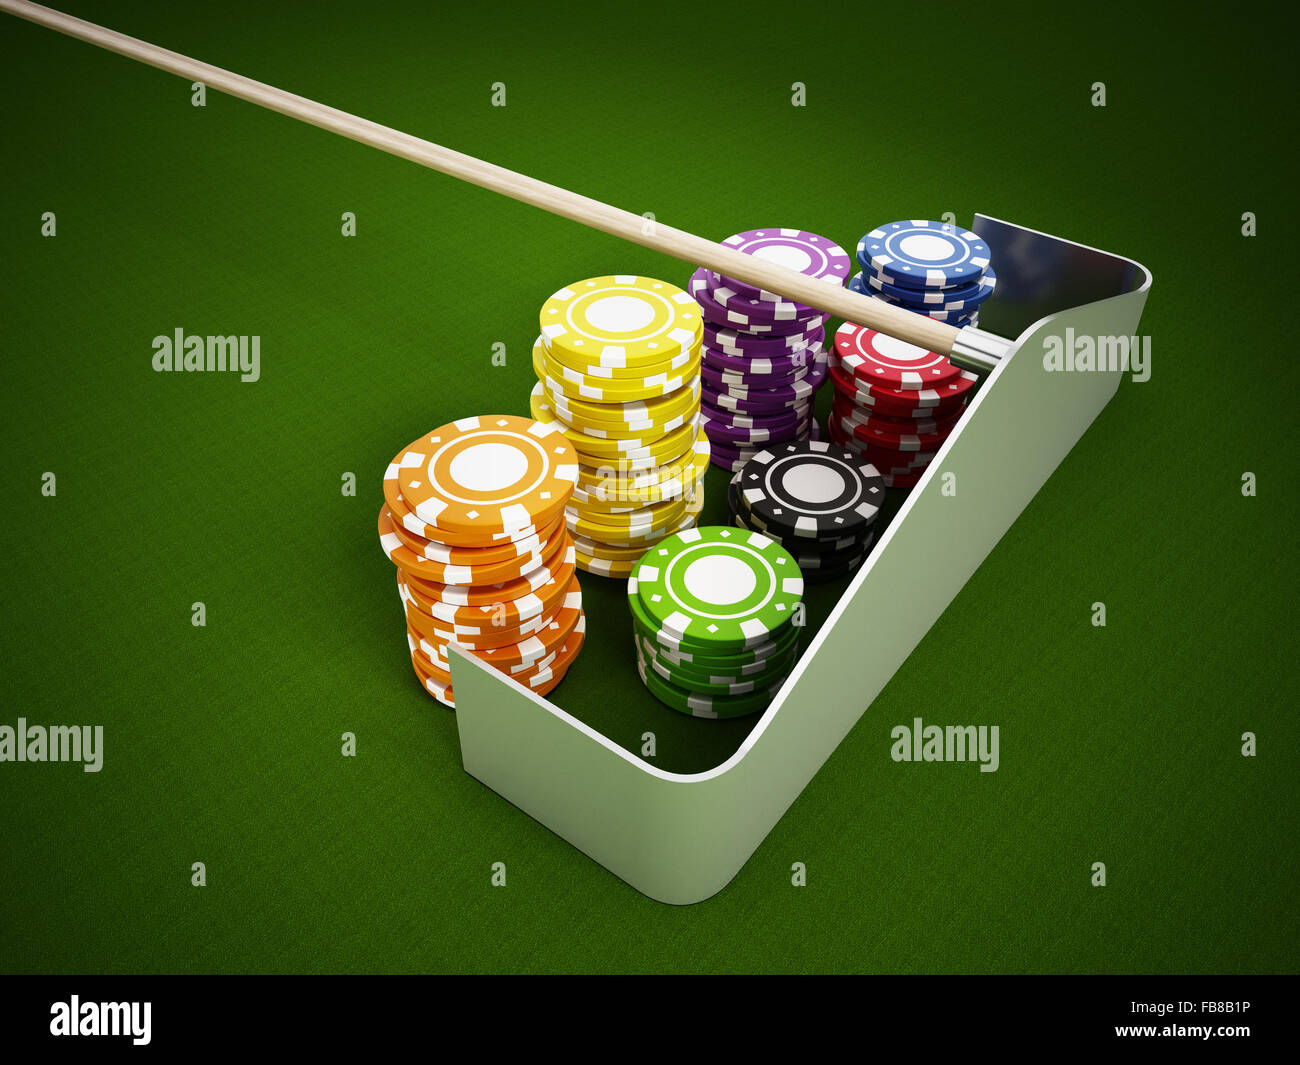 Casino chips standing on green cloth. - Stock Image